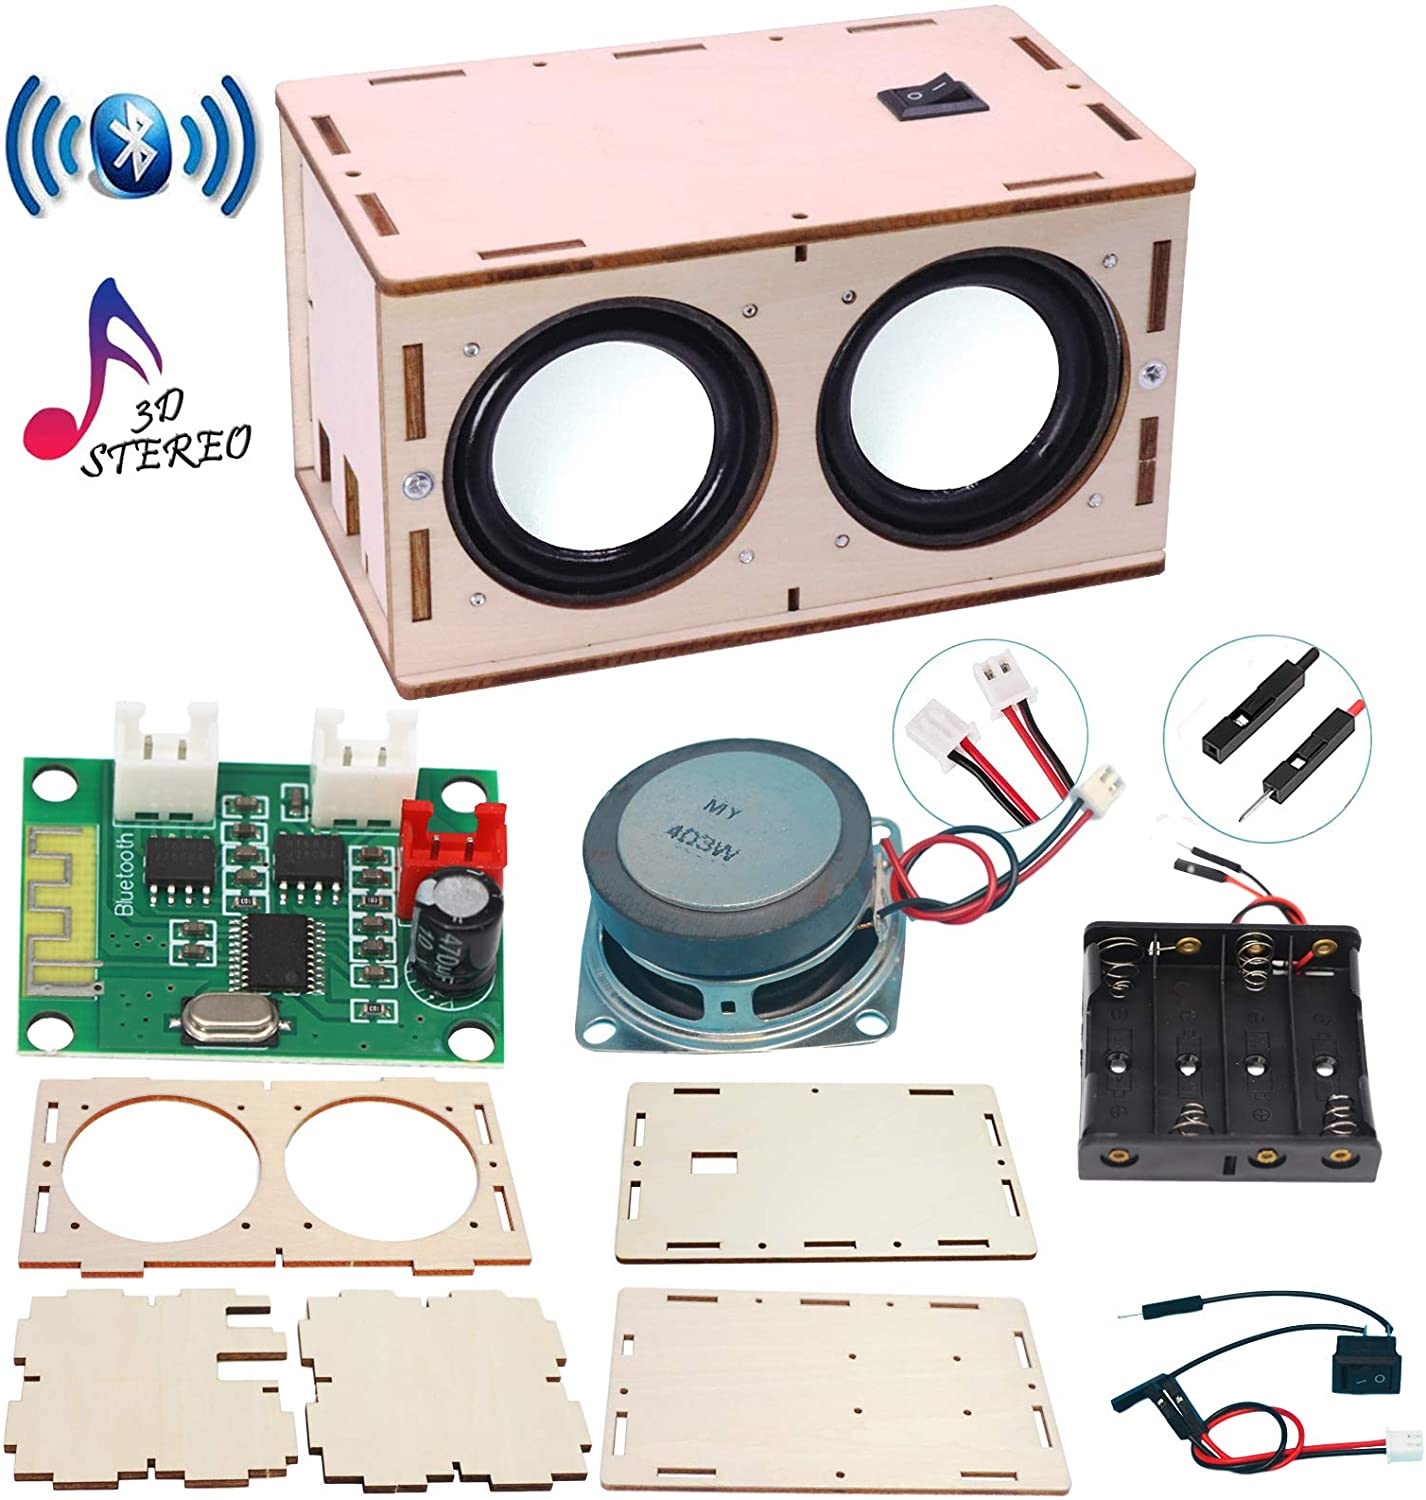 DIY Bluetooth Speaker Box Kit Electronic Sound Amplifier - Build Your Own  Portable Wood Case Bluetooth Speaker with Sound - Science Experiment and